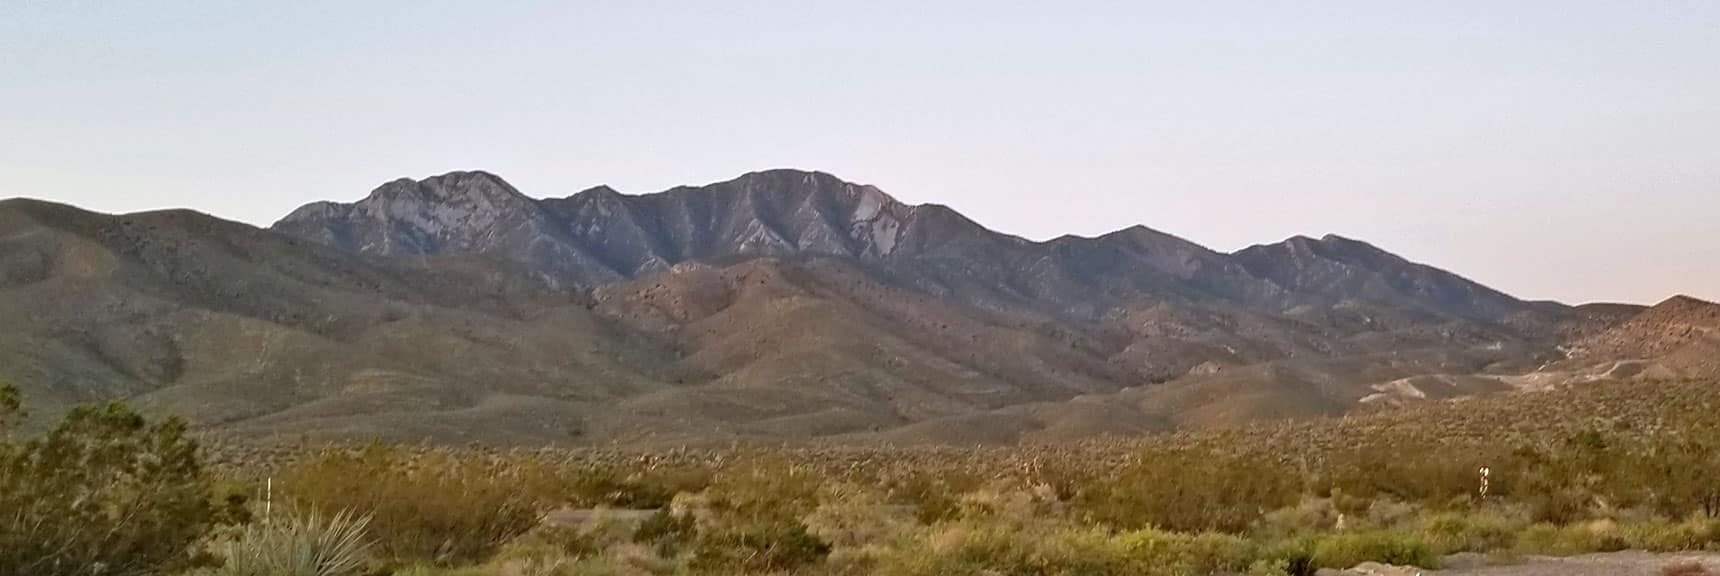 Morning View on the Way to El Padre Mountain, La Madre Mountains Wilderness, Nevada